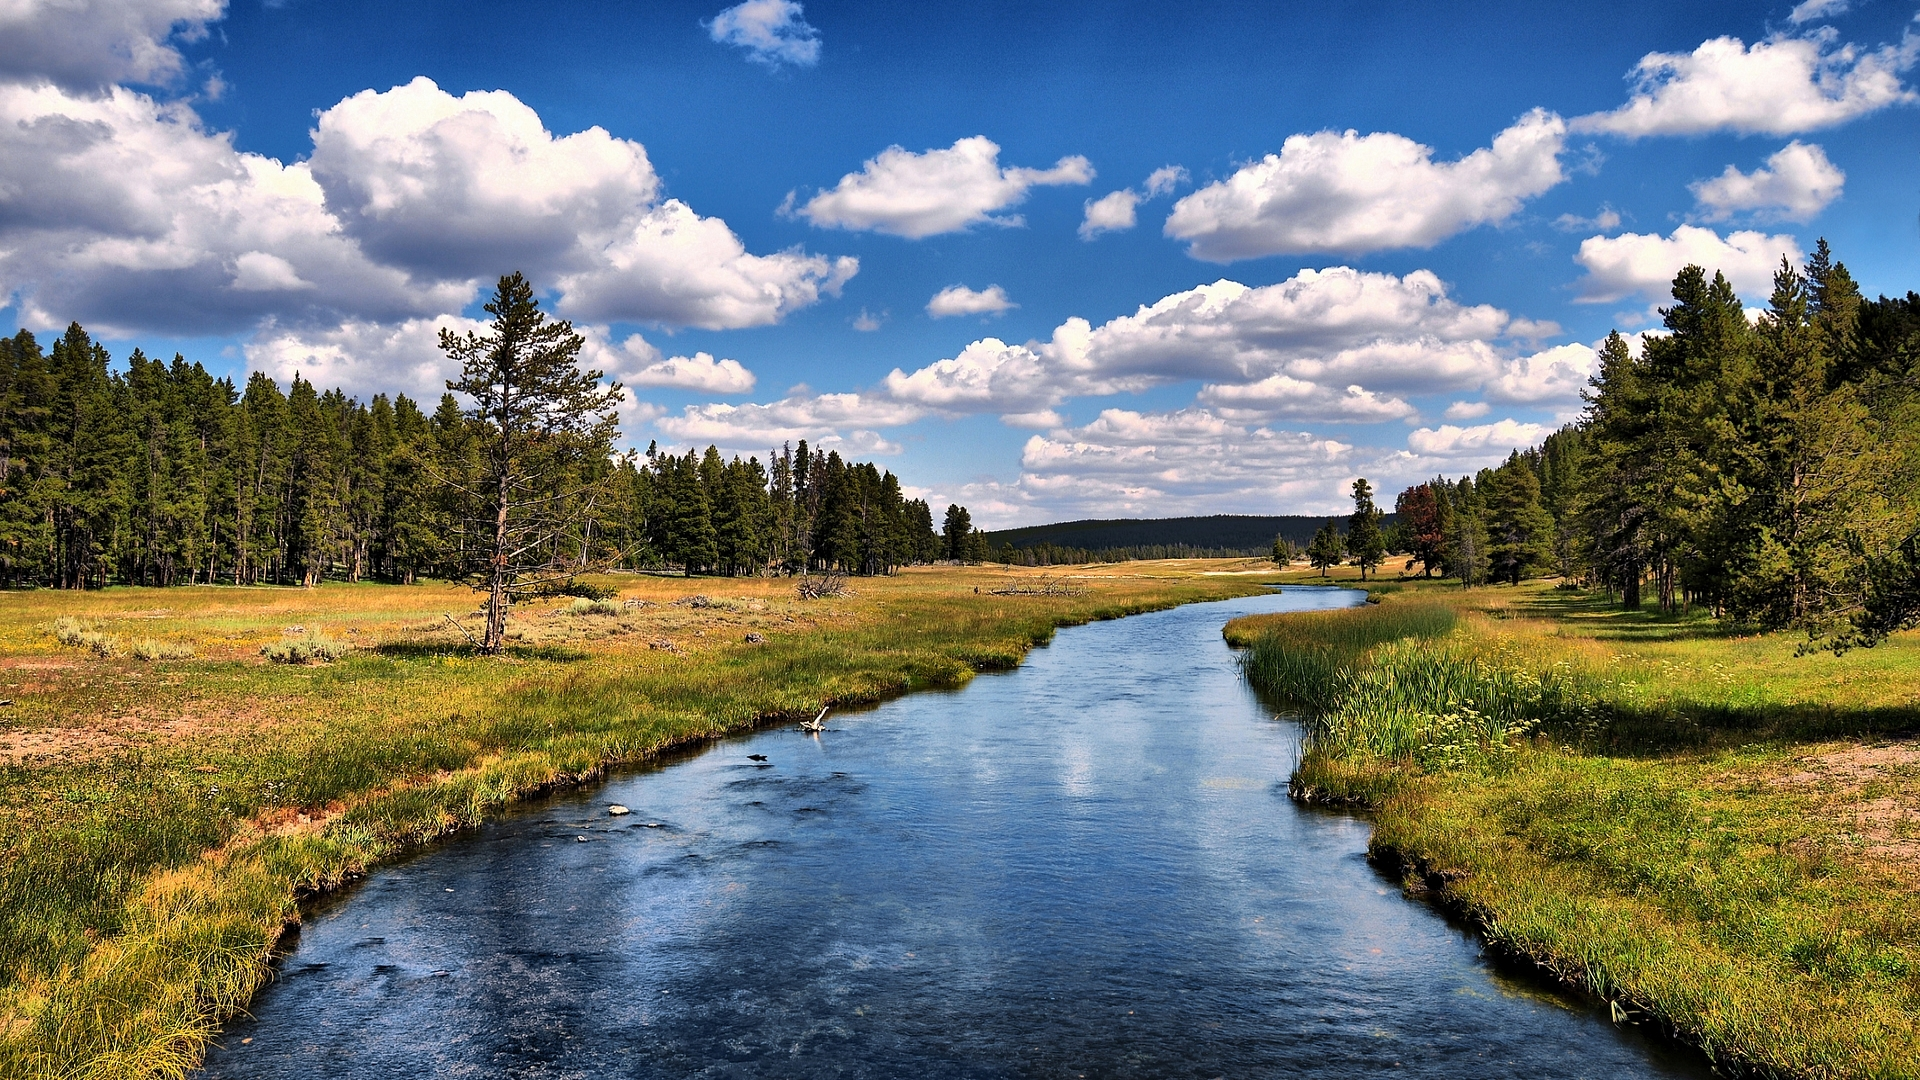 clouds forest rivers nature HD Wallpaper